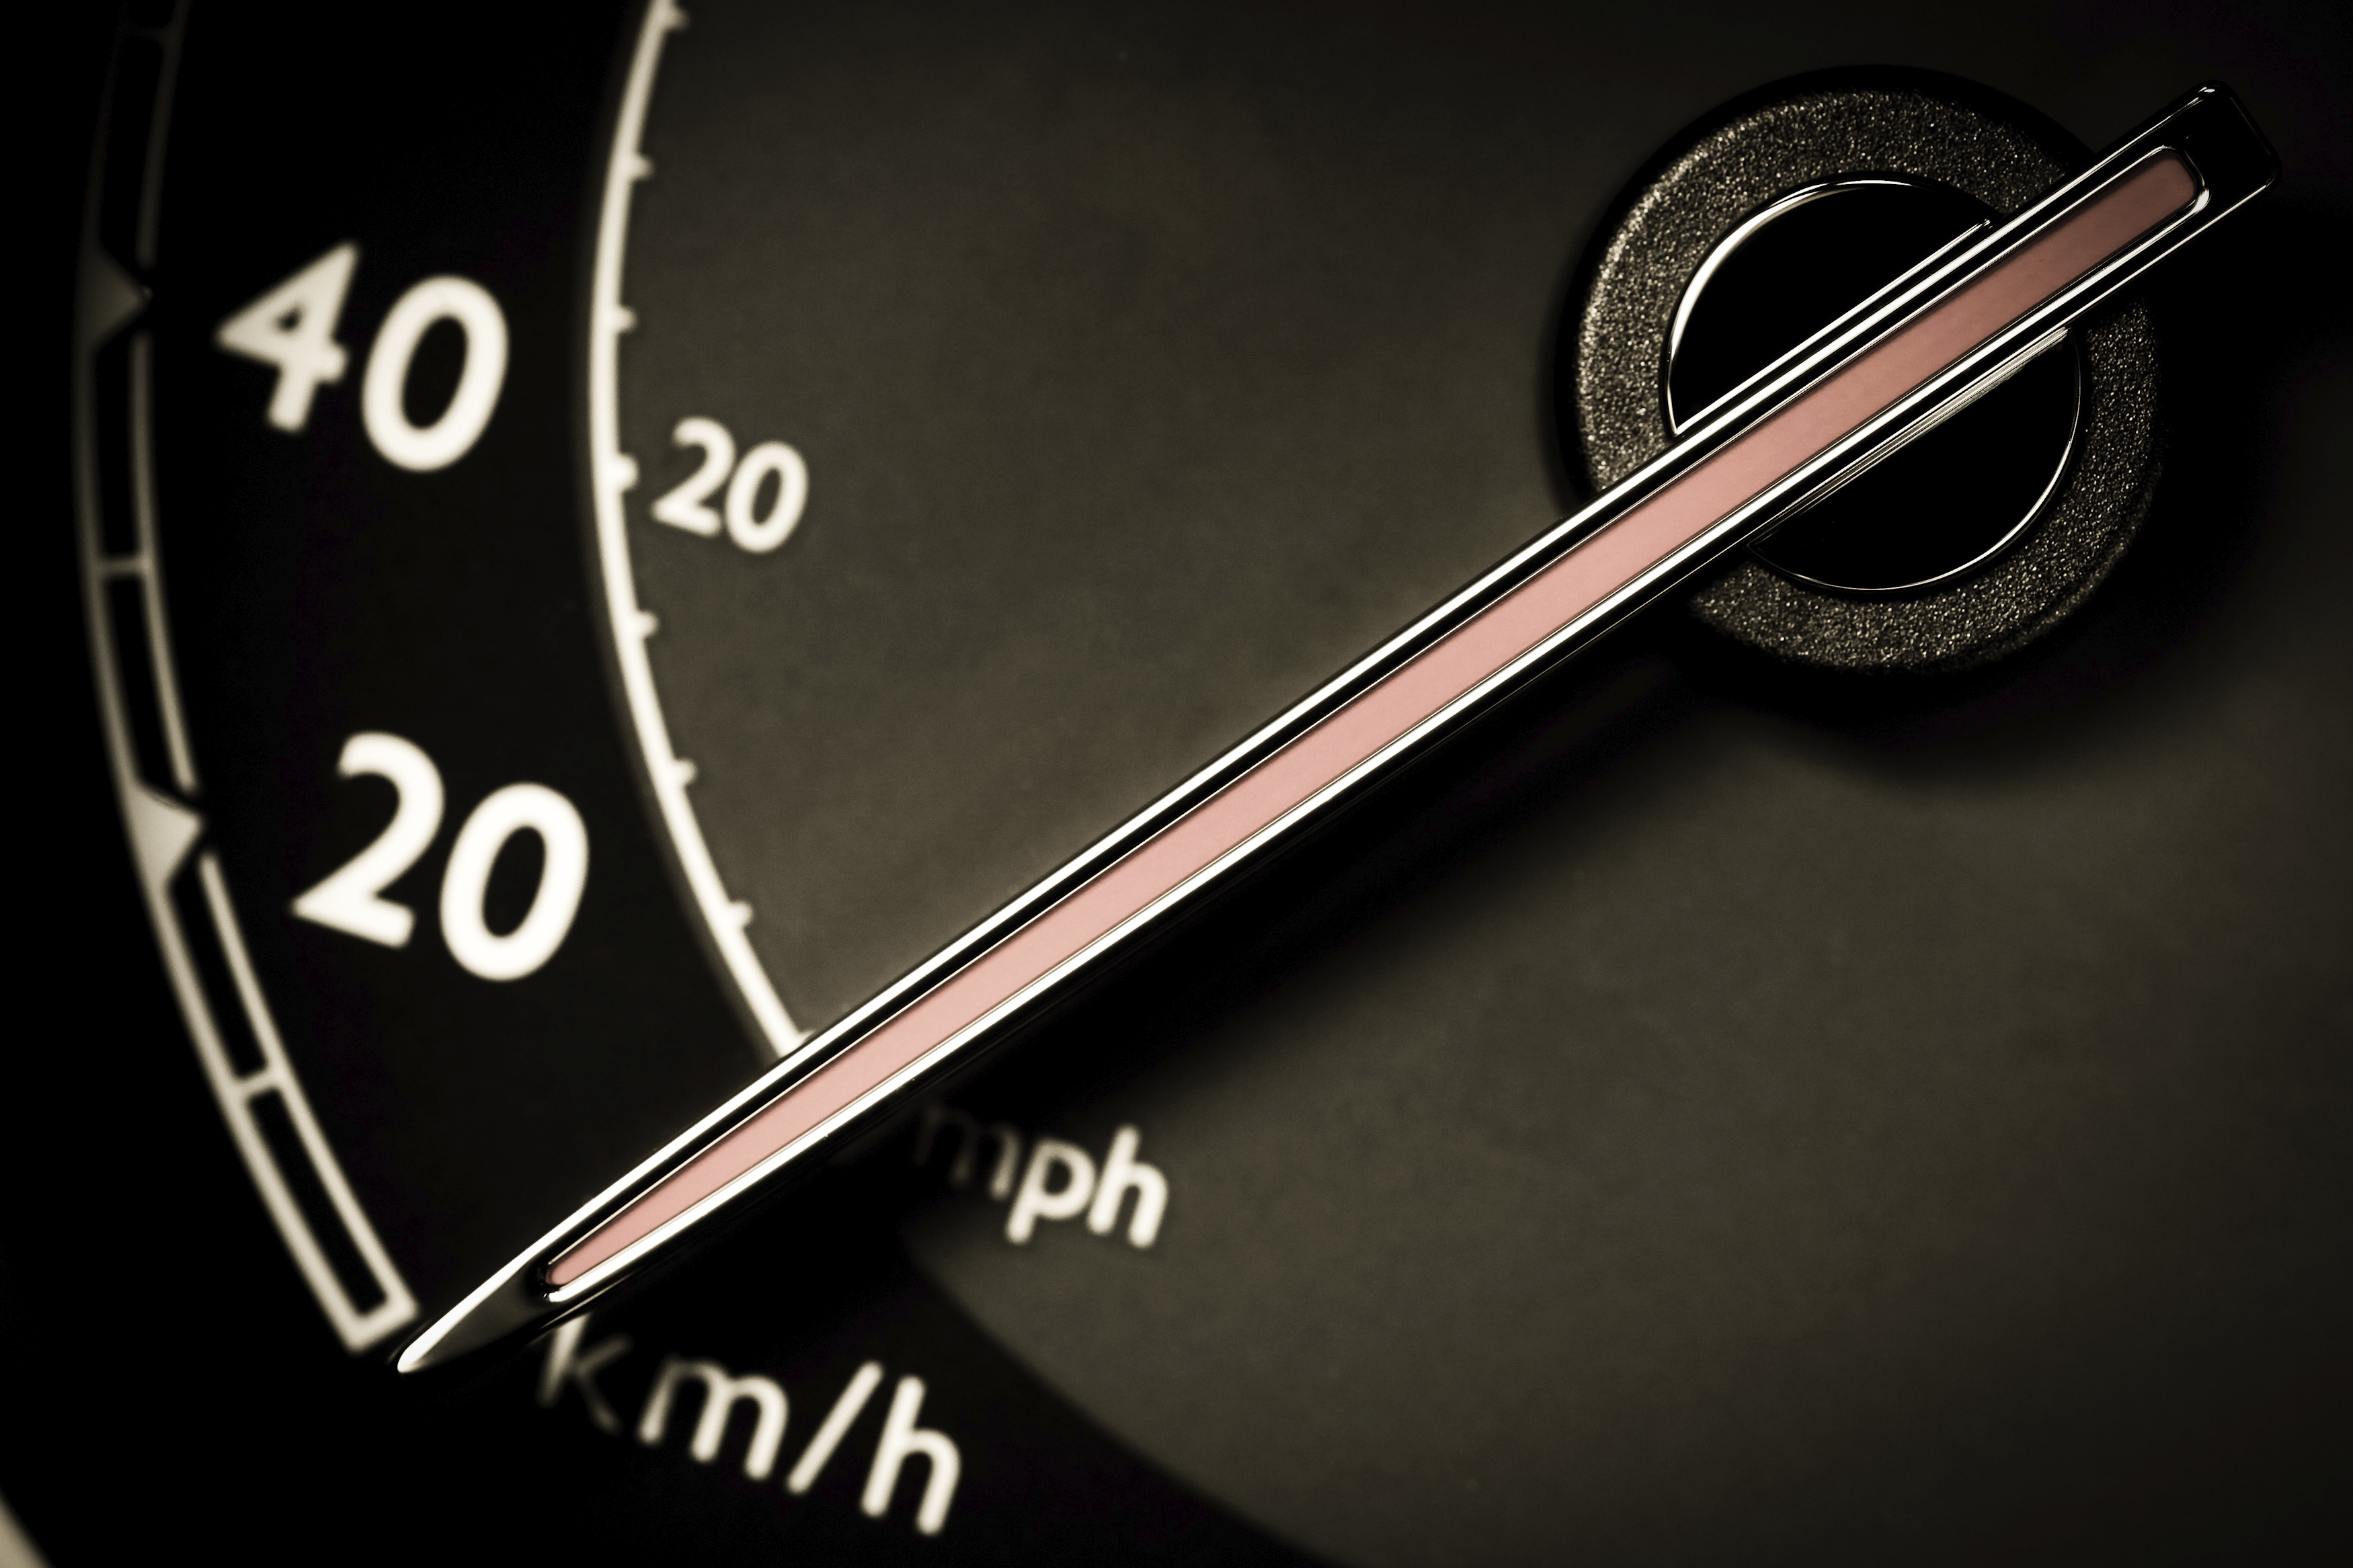 heavy-vehicle-speed-limiters